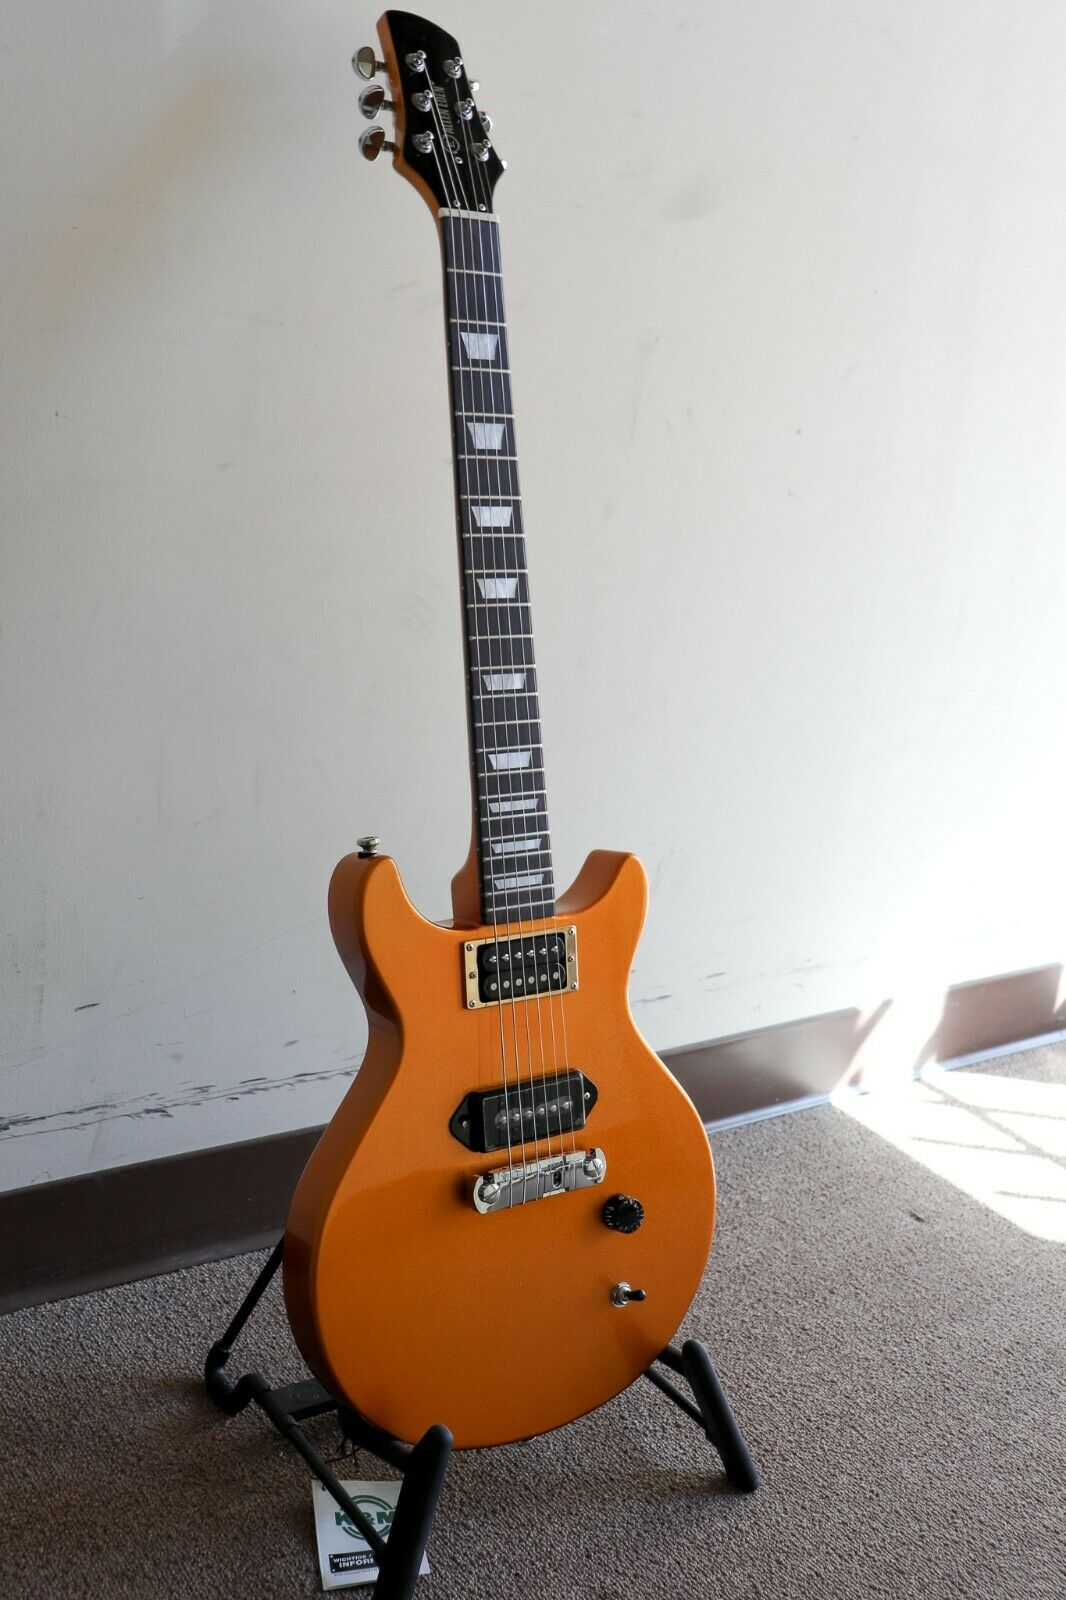 Allen Eden Southbound Junior with Dual Pickups and Hardshell Case